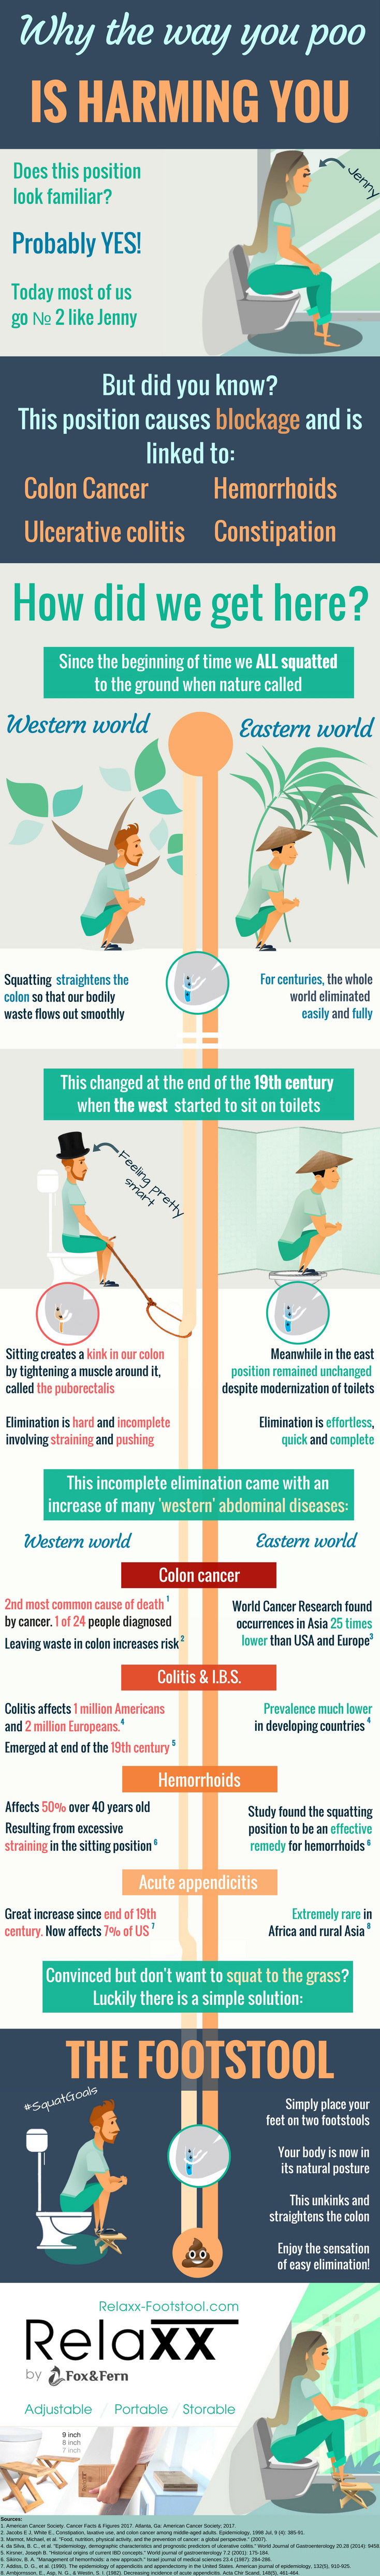 A Toilet Stool is Essential For Your Health, Here is WHY